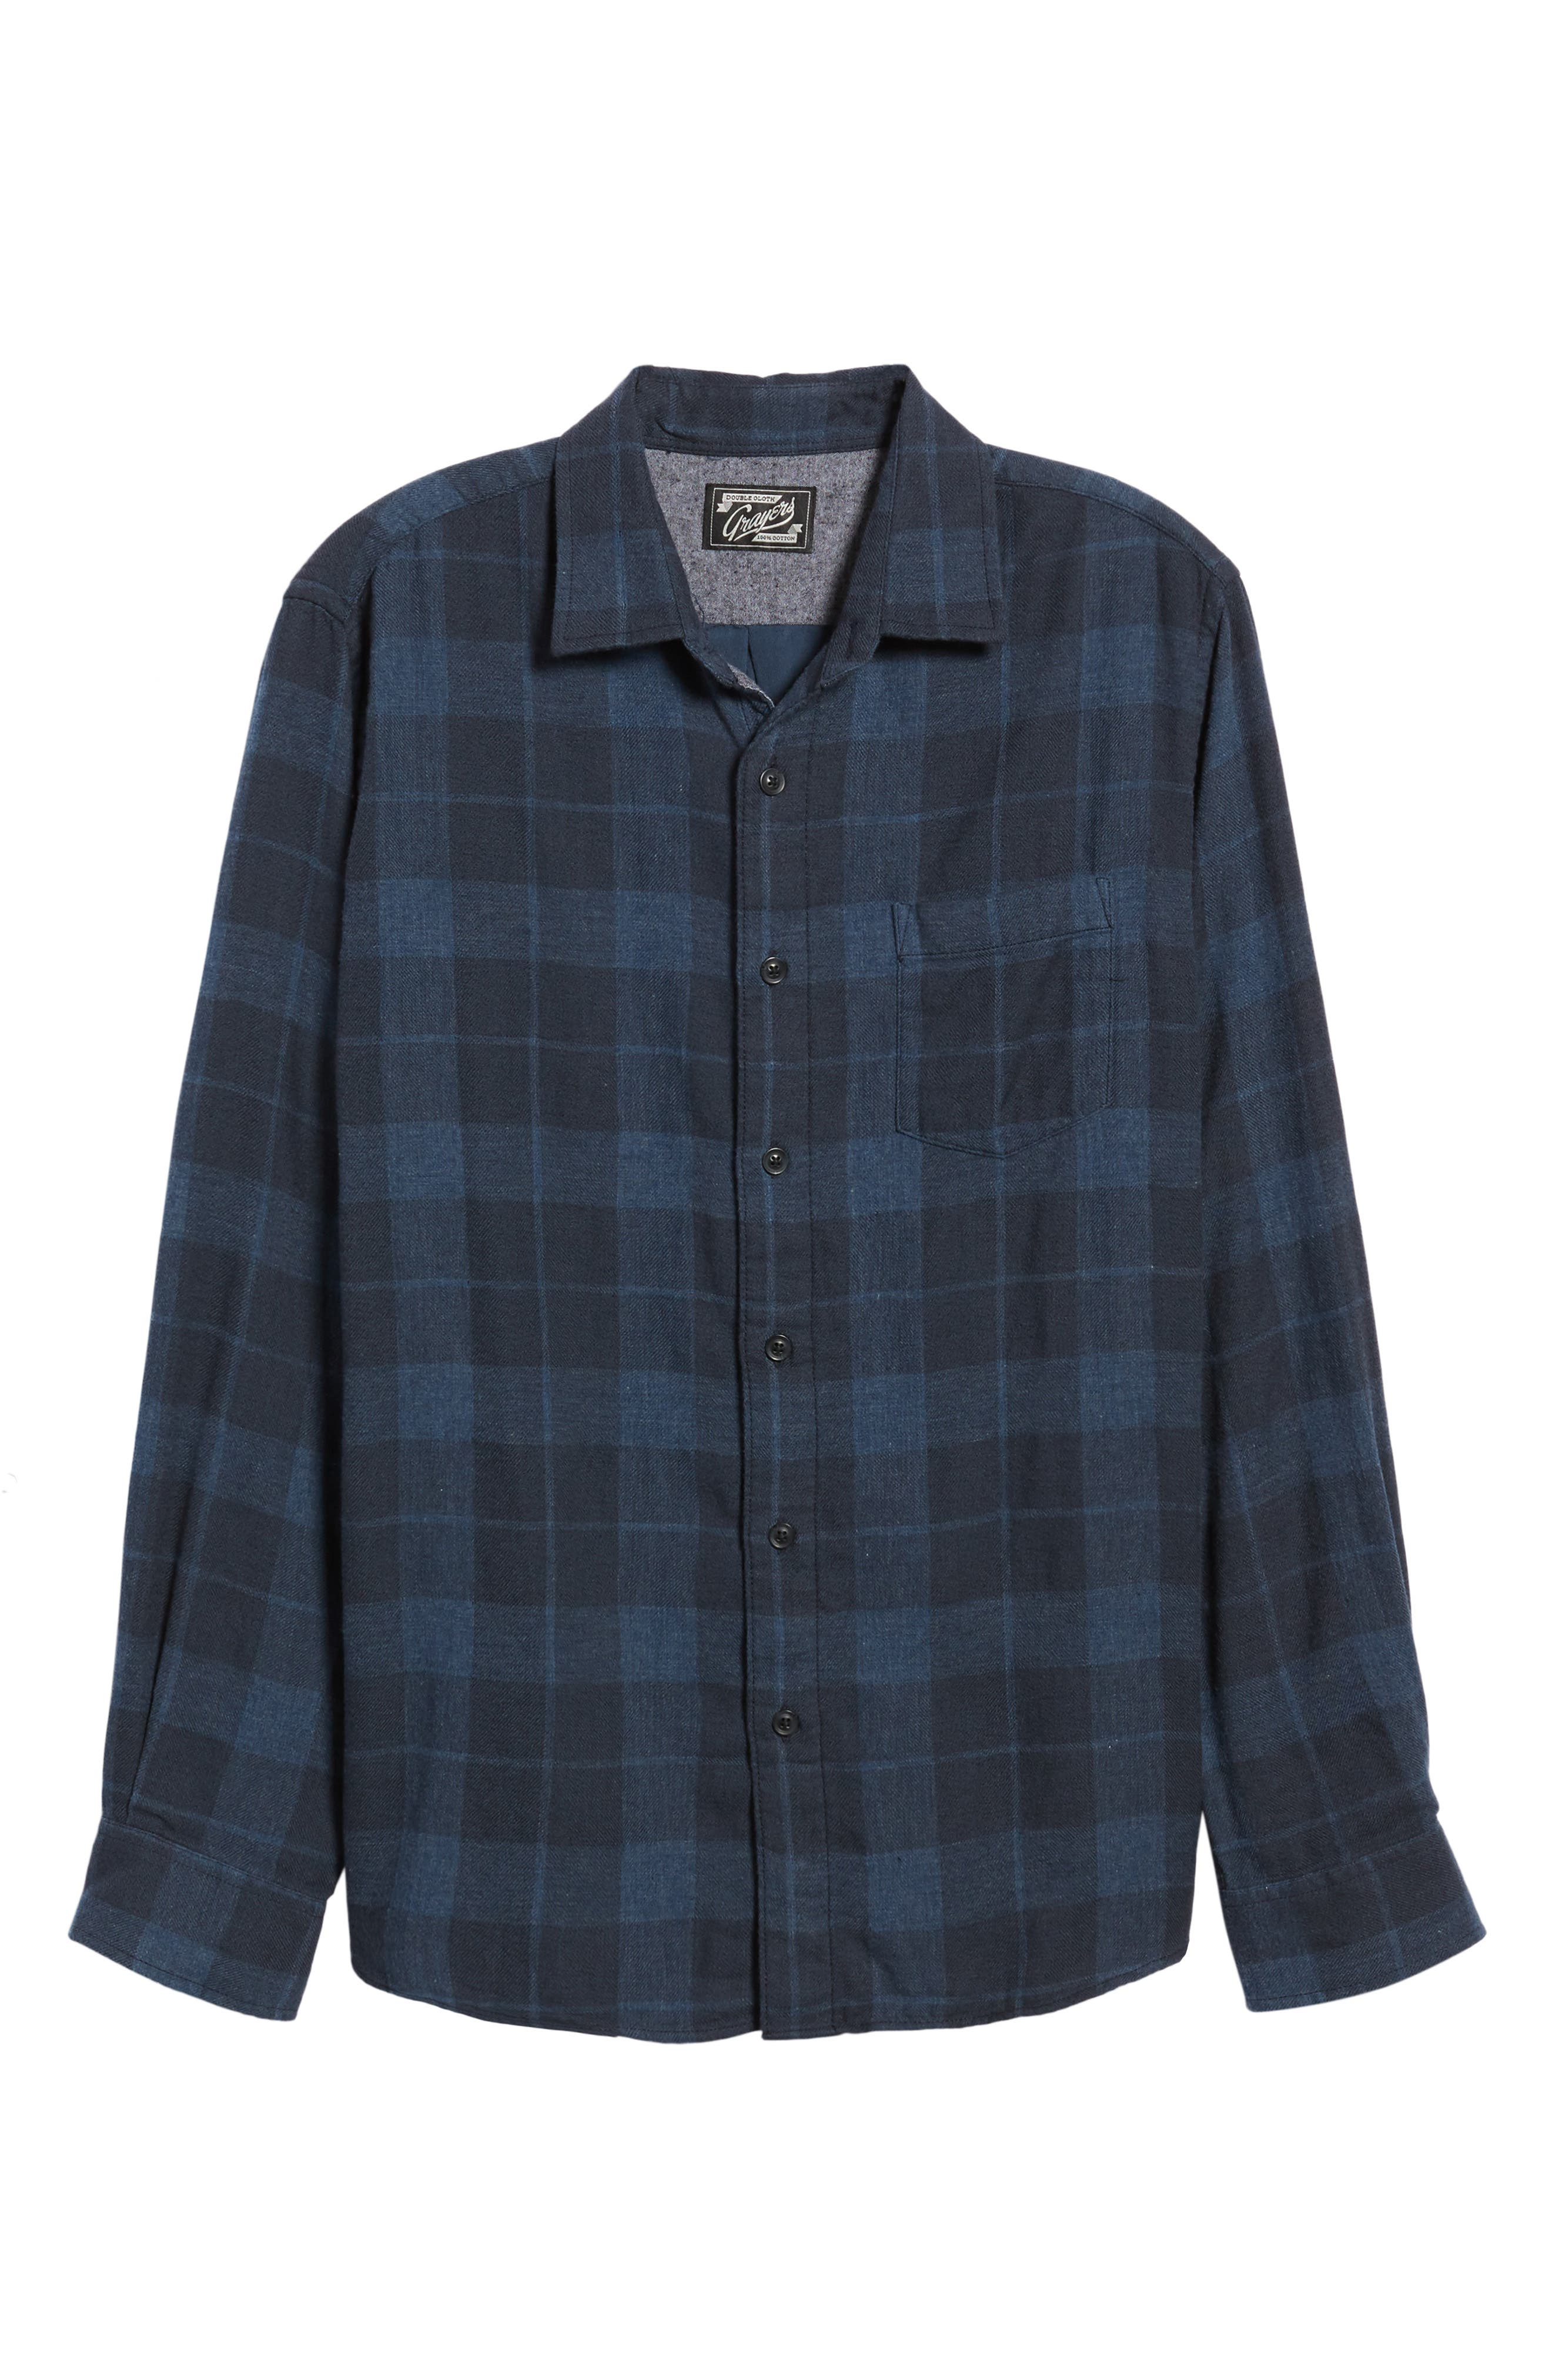 Helsby Double Cloth Plaid Sport Shirt,                             Alternate thumbnail 6, color,                             461